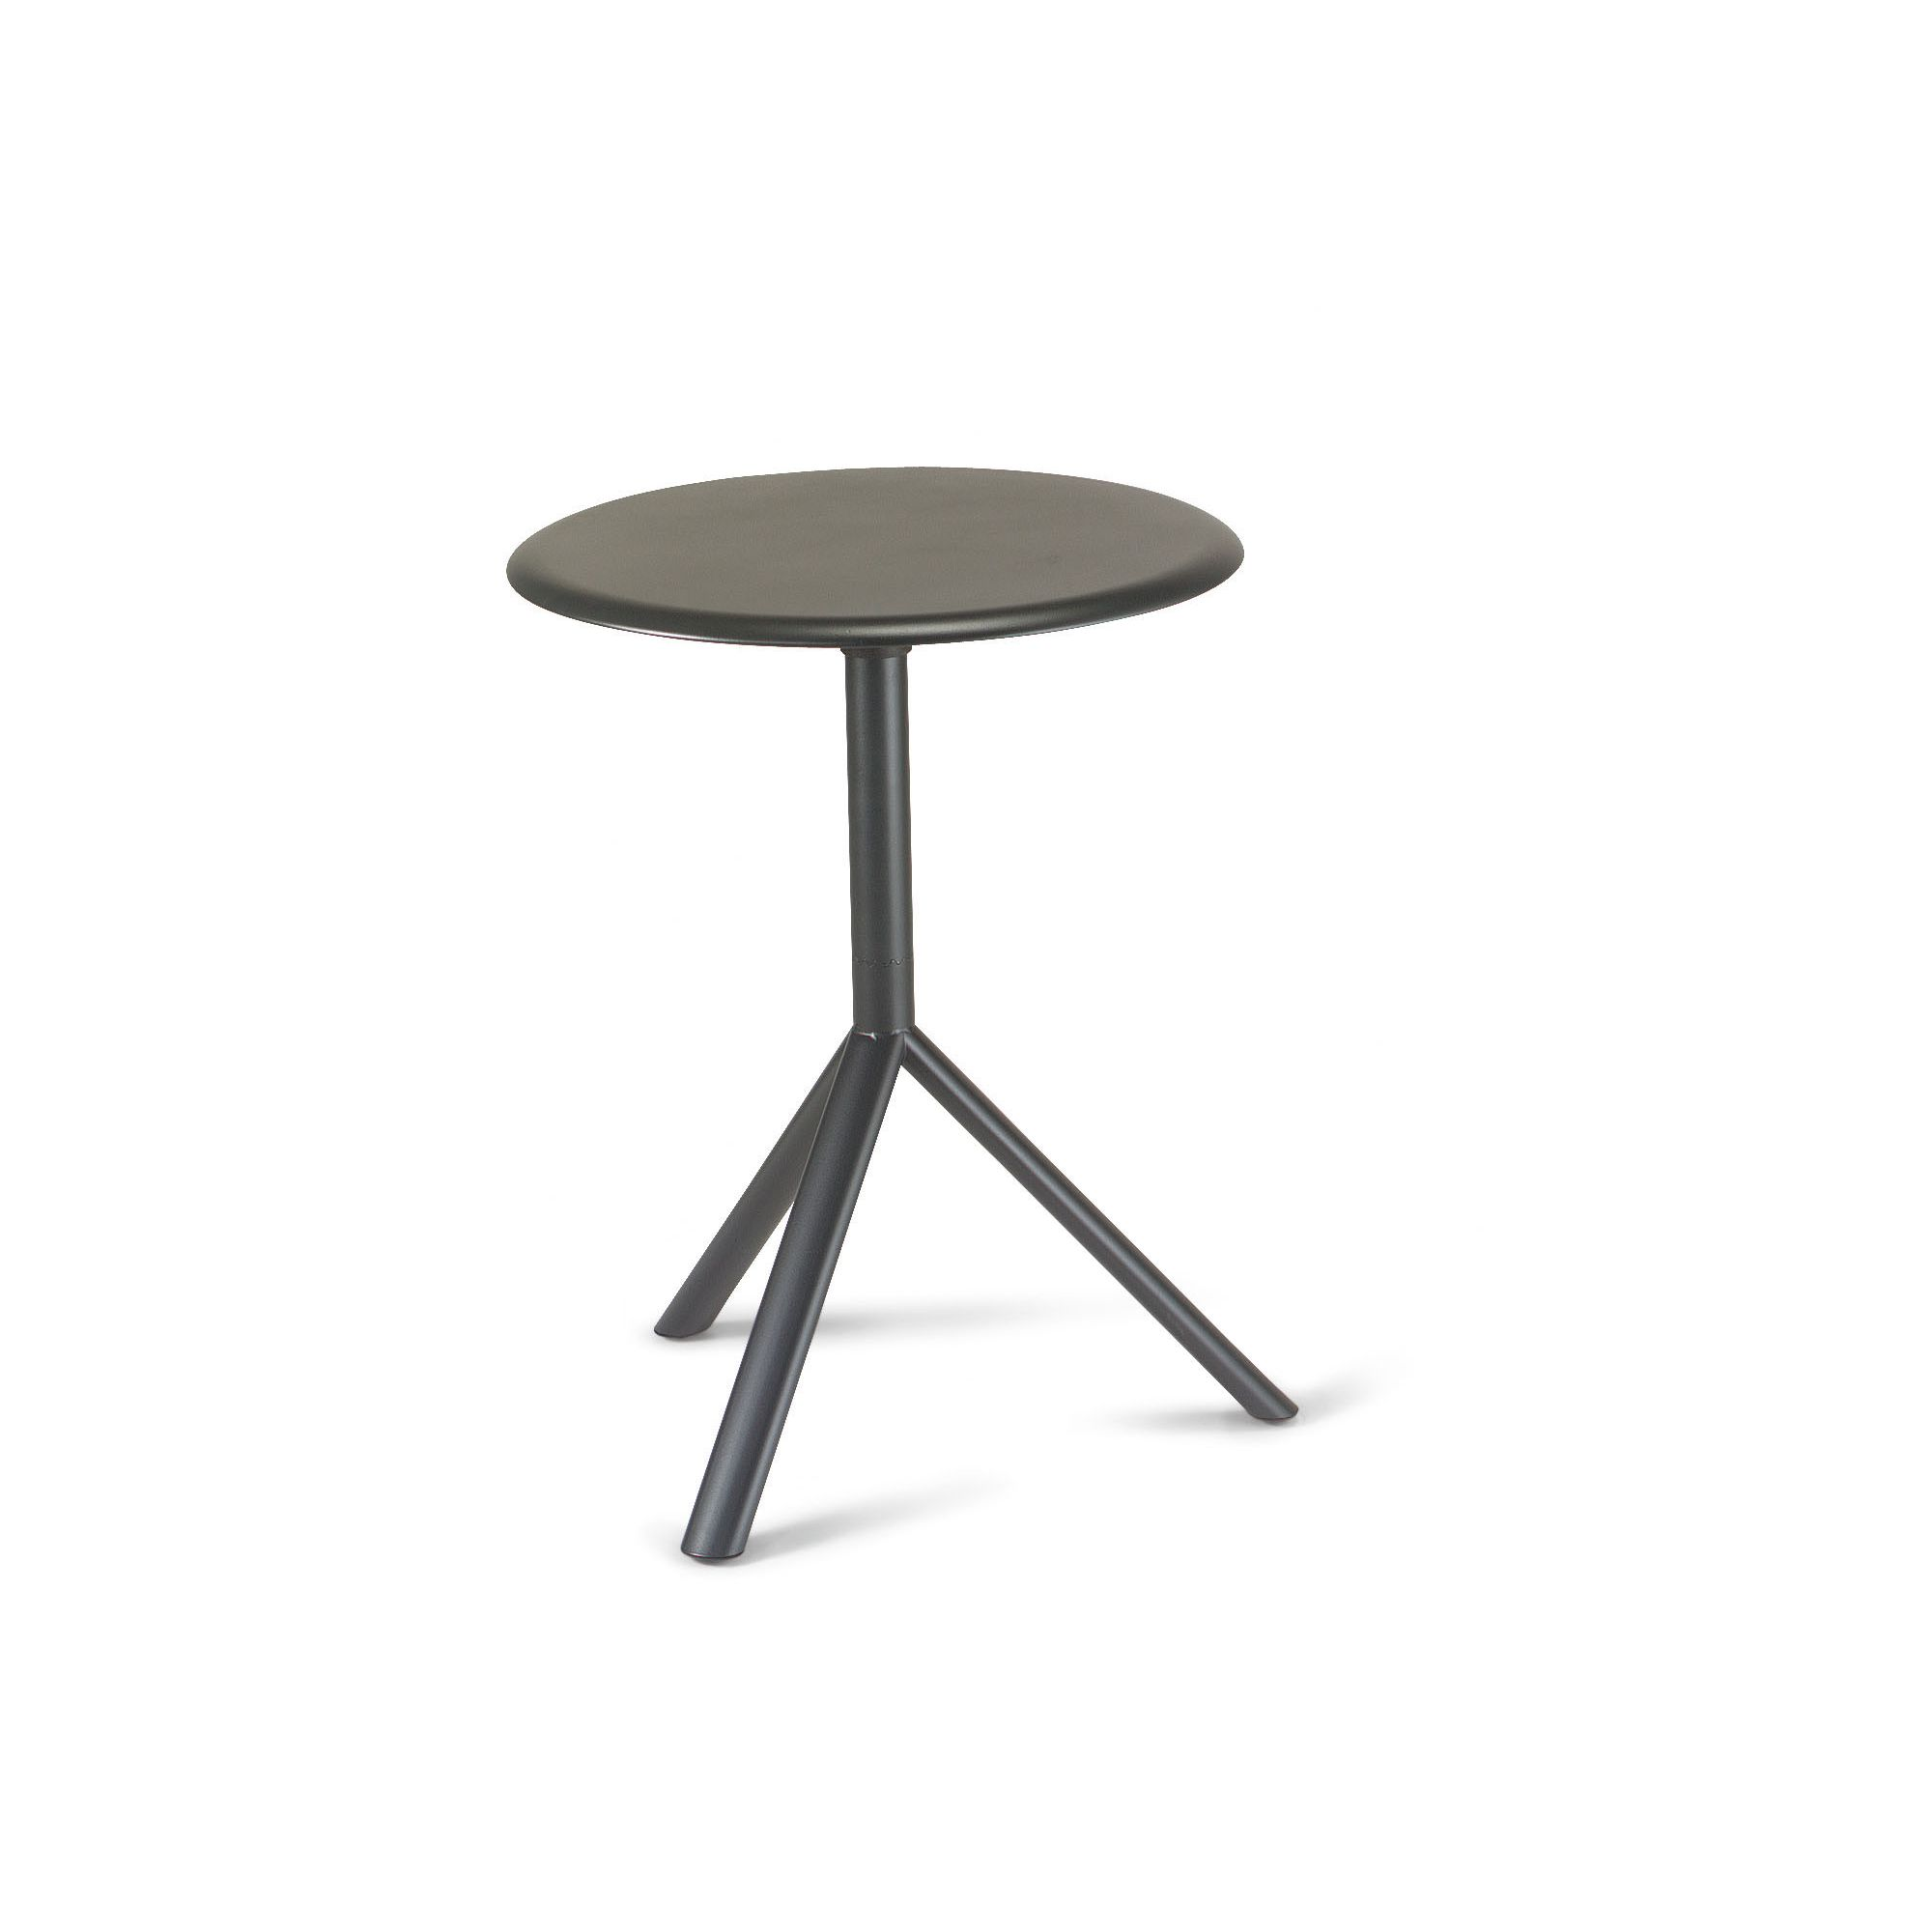 Plank Miura Round Table with High Pressure Laminate Top - 109cm - Black at Tesco Direct